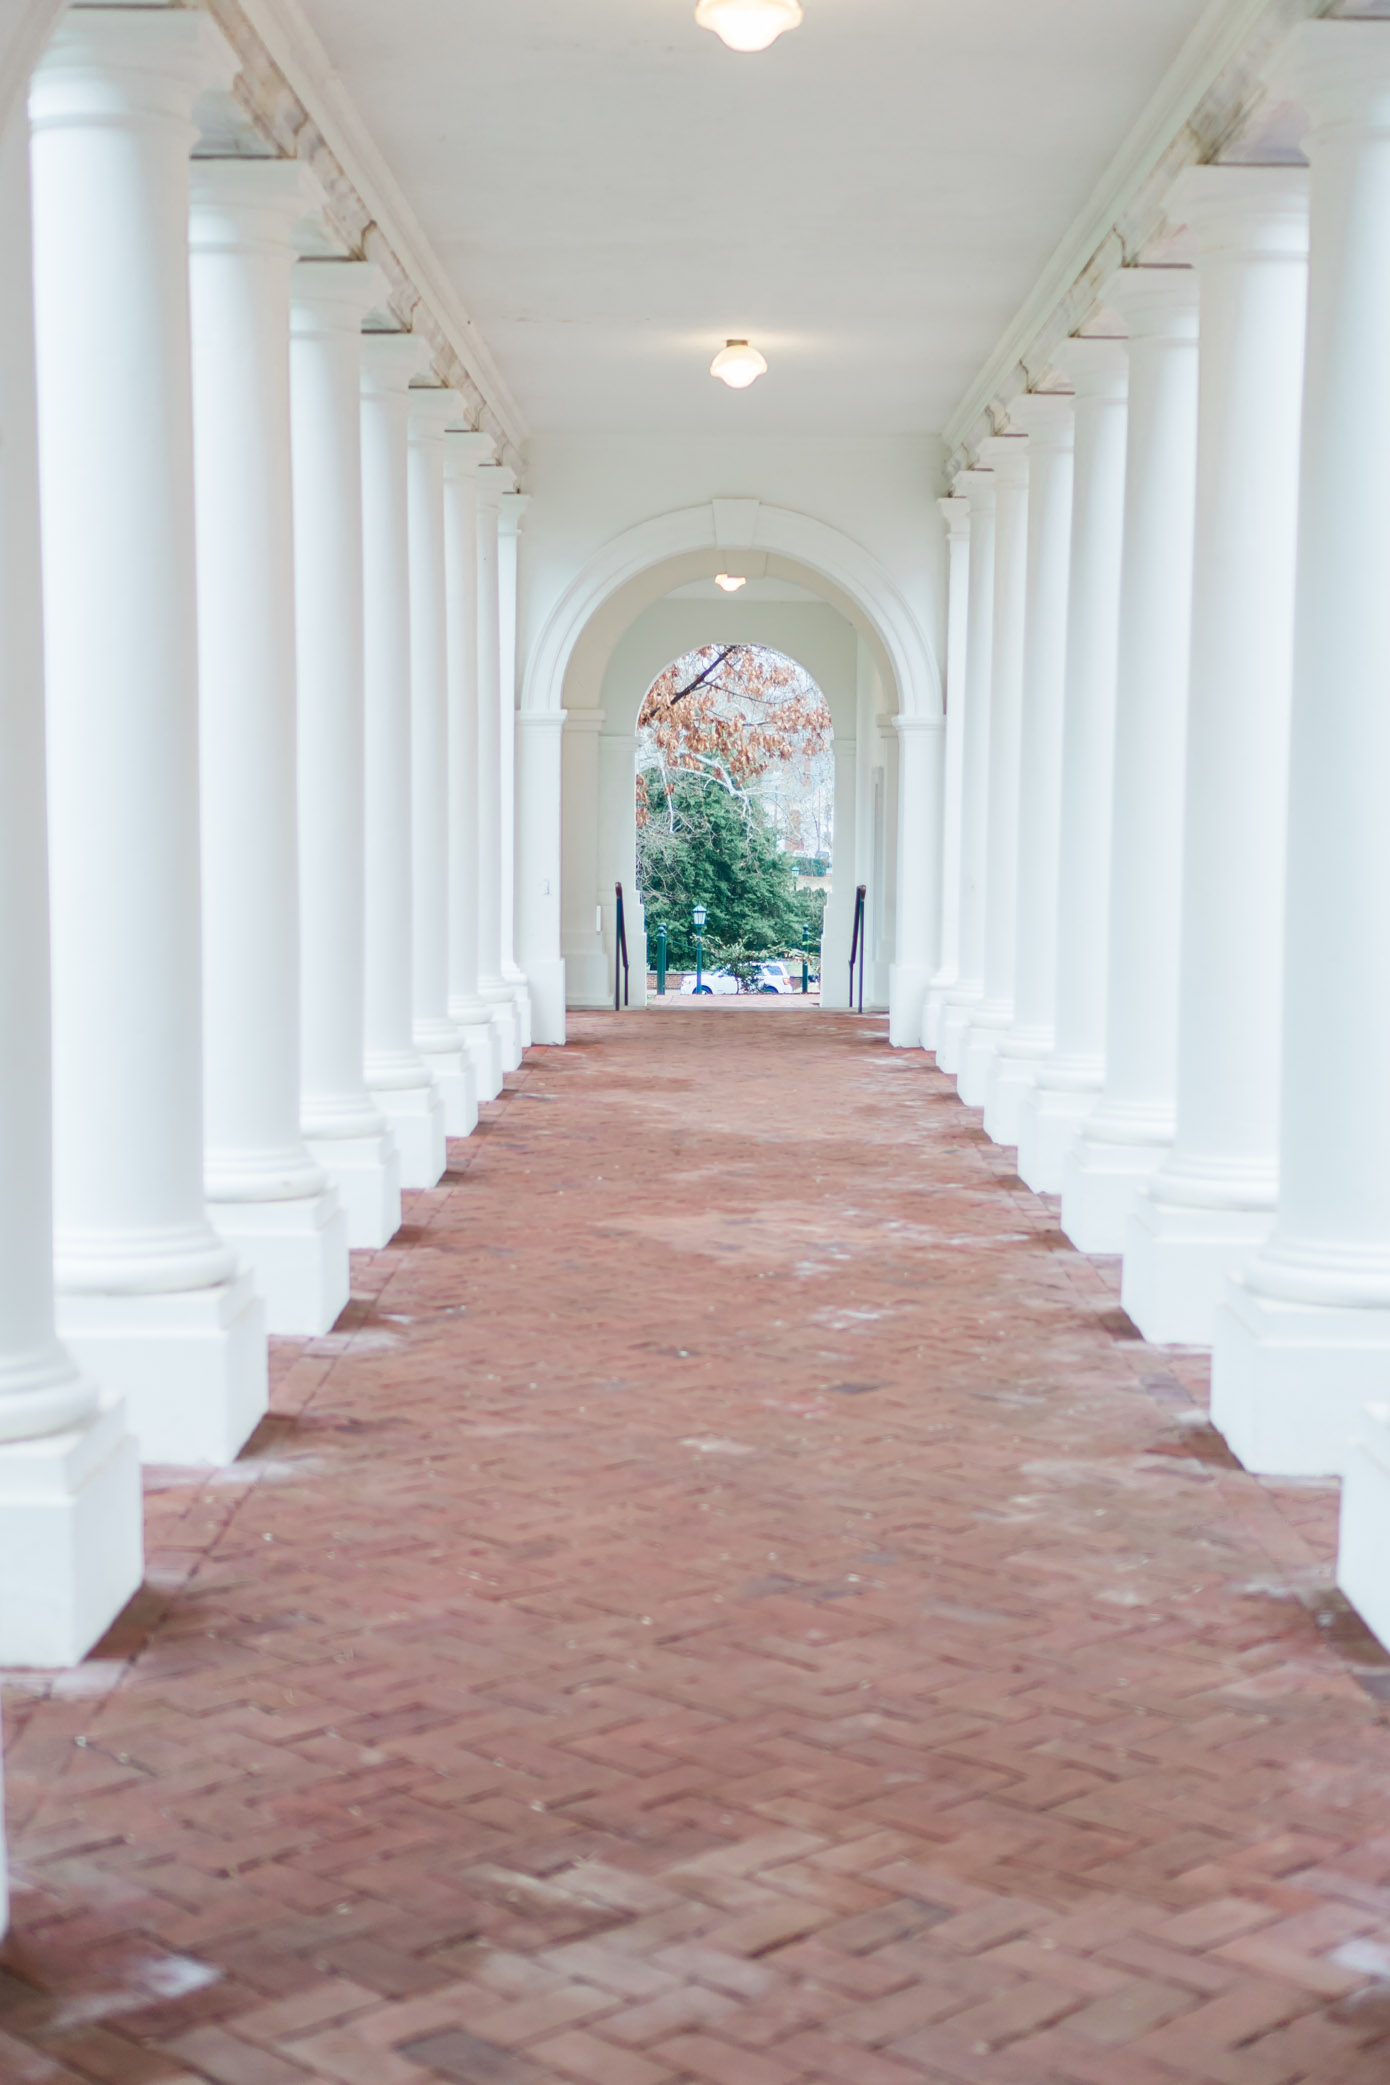 Charlottesville VA Travel Guide | UVA Campus | Louella Reese Life & Style Blog